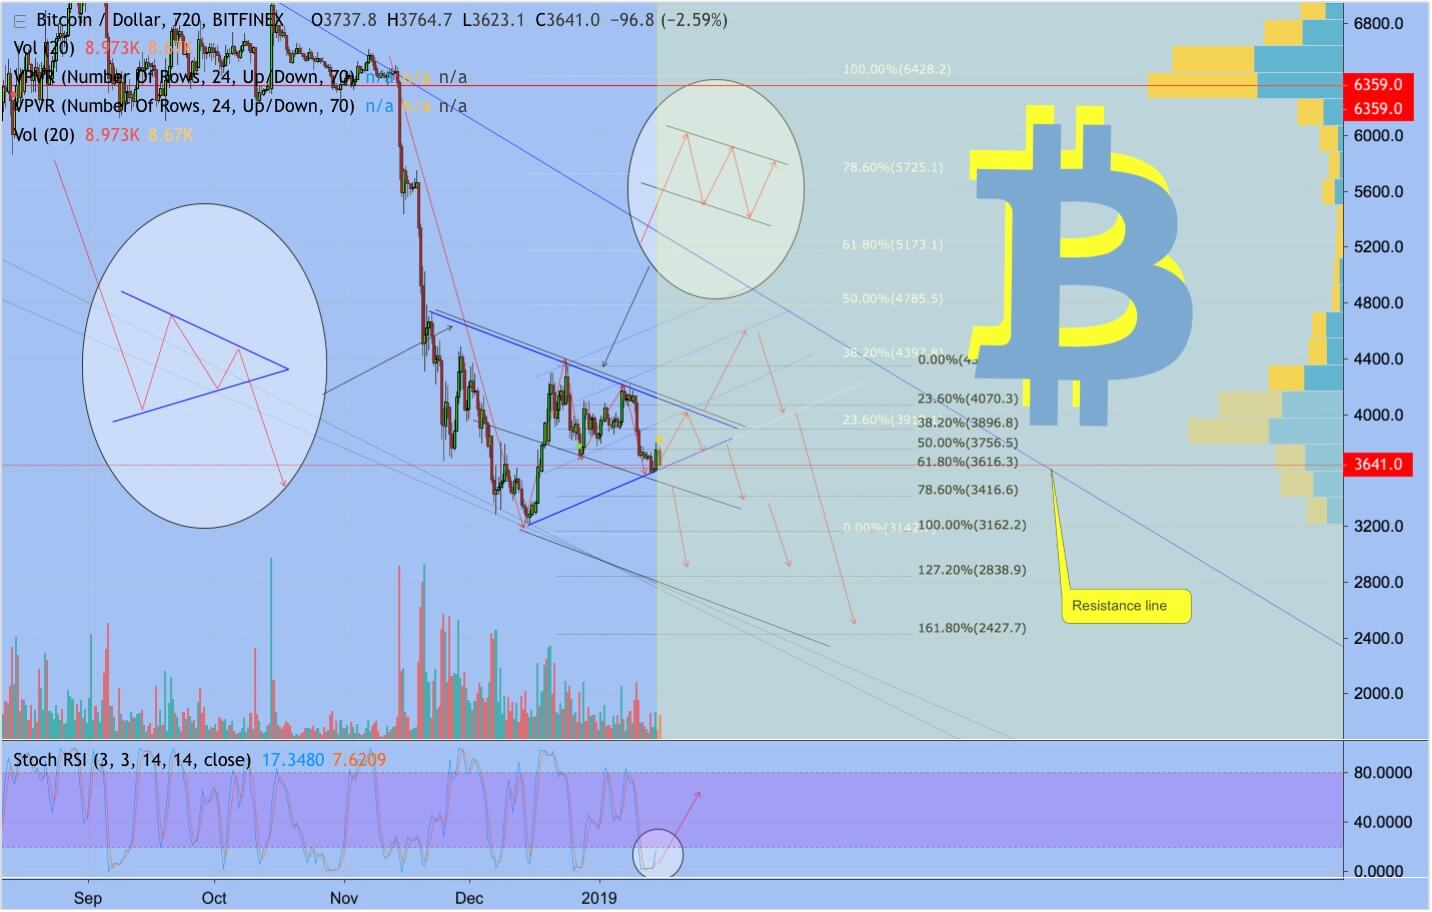 btc-usd-price-prediction-tradingview